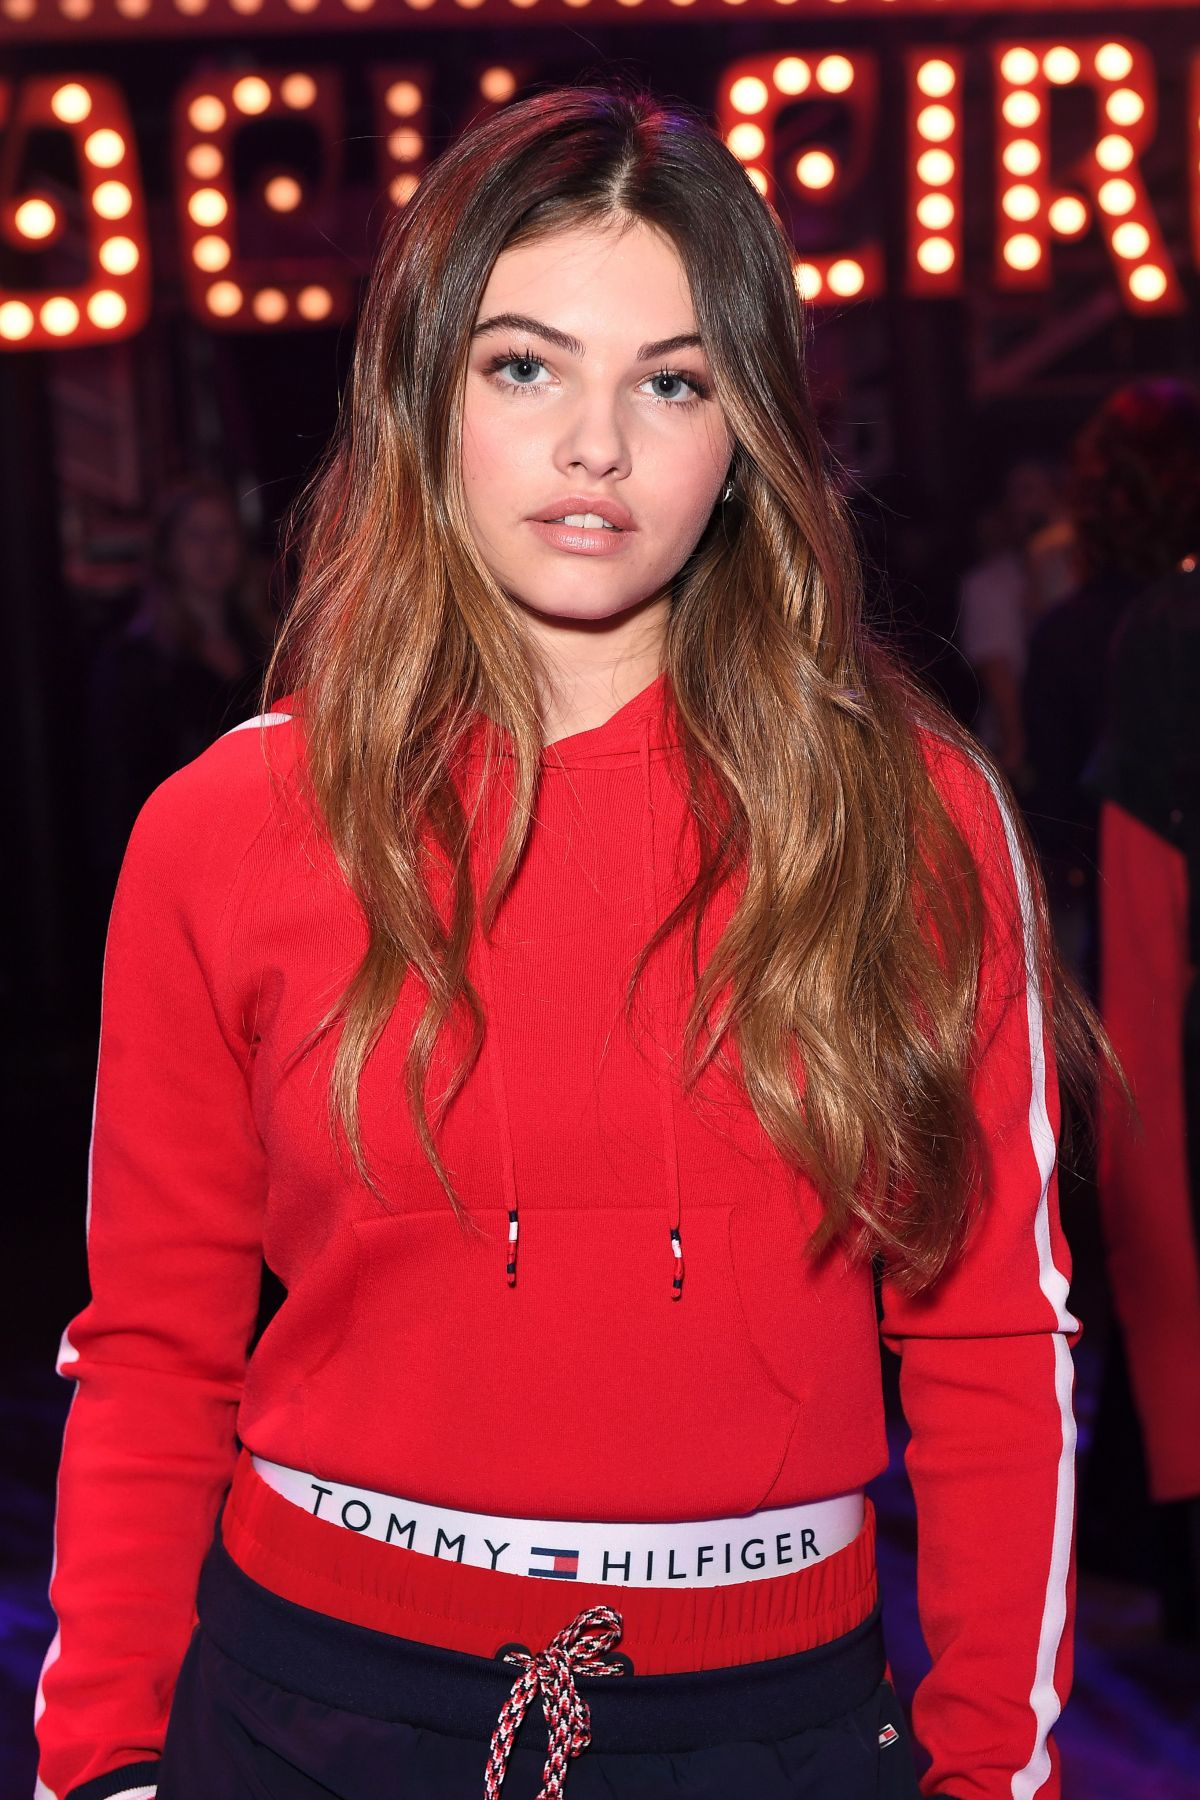 thylane-blondeau-at-tommy-hilfiger-s-s-2018-show-in-london_1.jpg